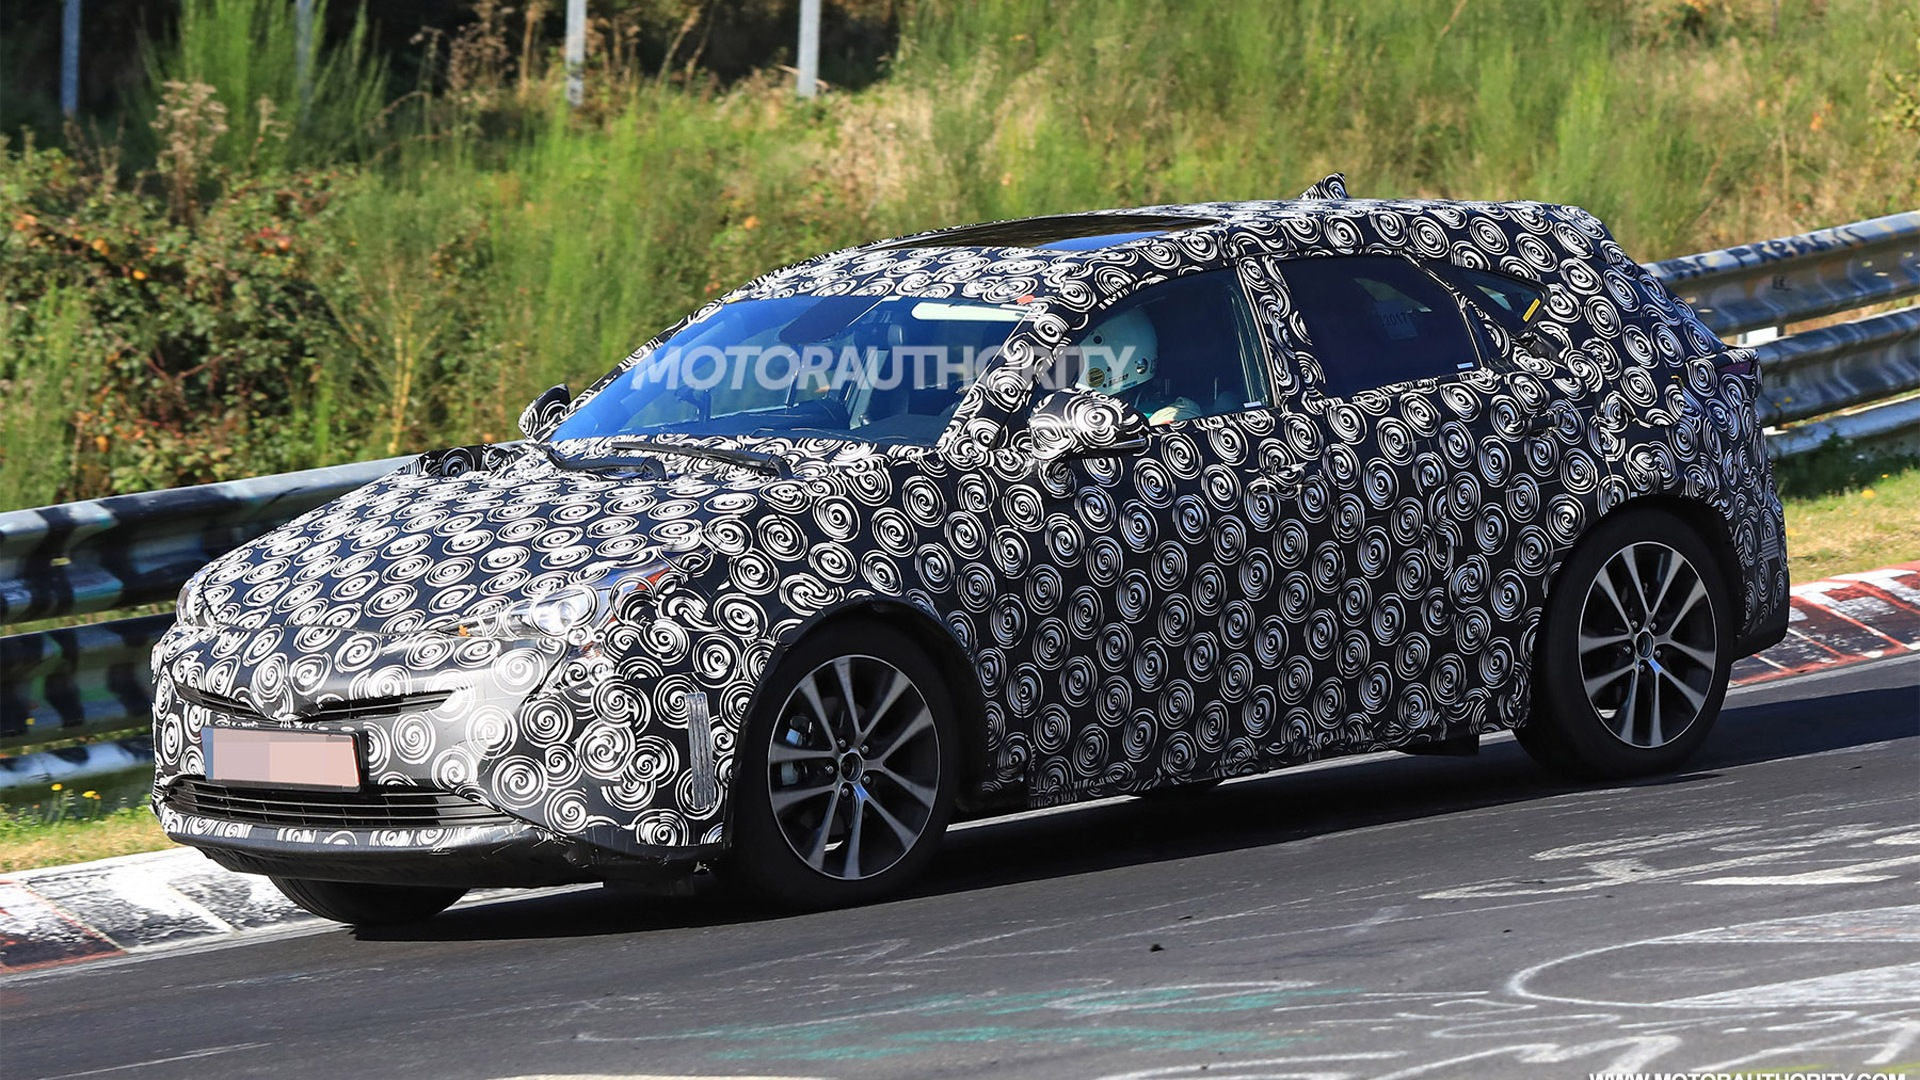 95 A Spy Shots Toyota Prius First Drive